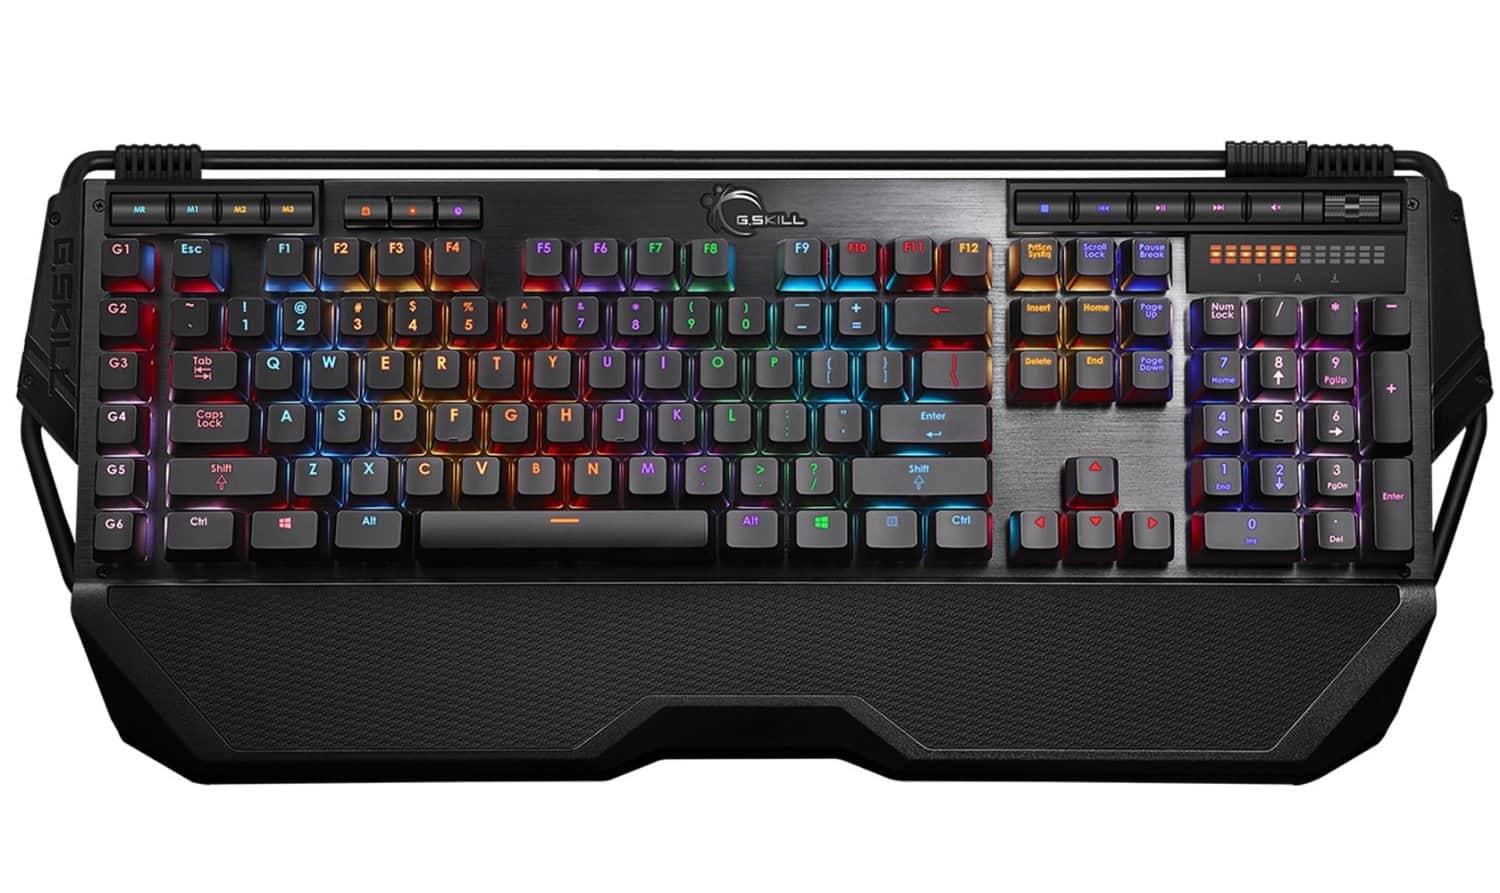 G.SKILL RIPJAWS KM780R RGB Mechanical Gaming Keyboard 99.99 August 16th only